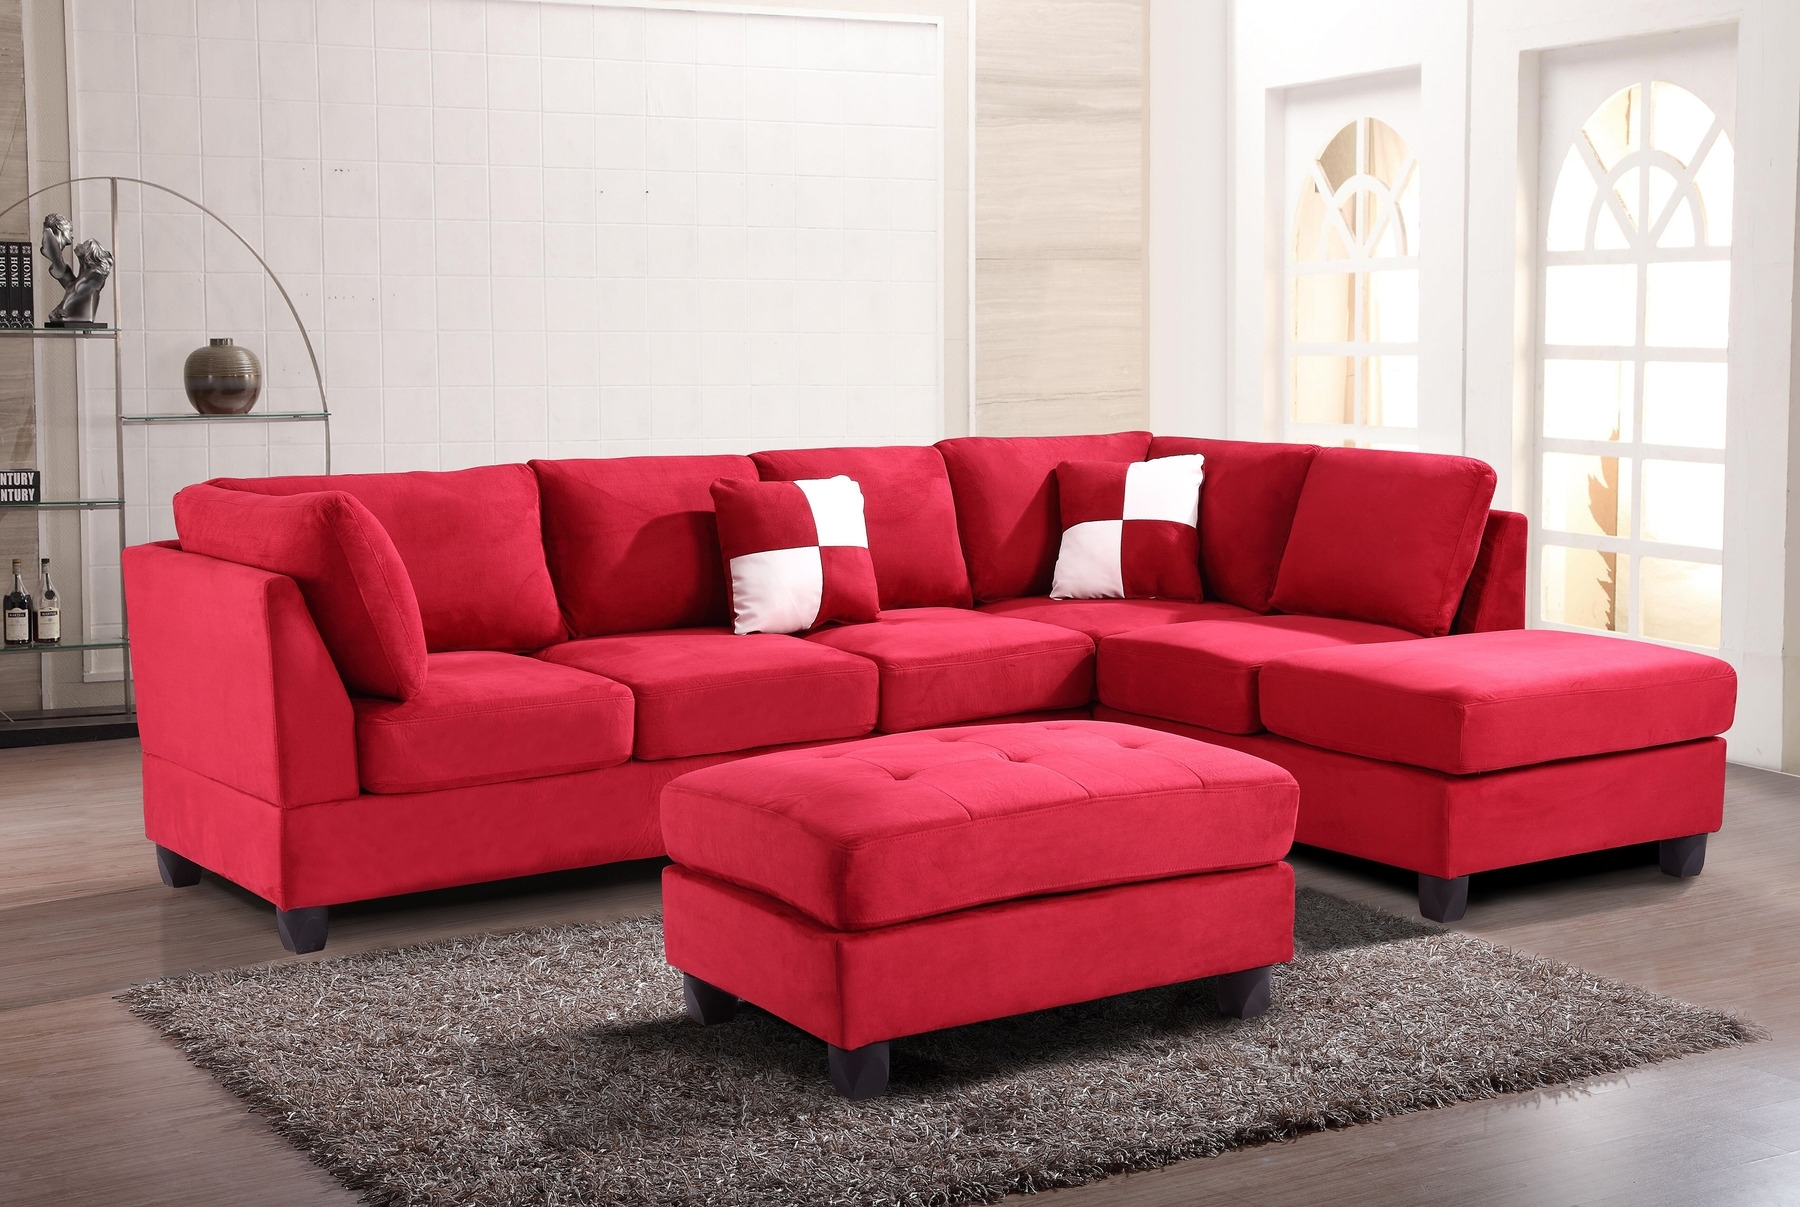 Red Leather Sectionalas For Salea With Chaise Fabric Couch Ottoman Regarding Red Sectional Sofas With Ottoman (Image 8 of 10)